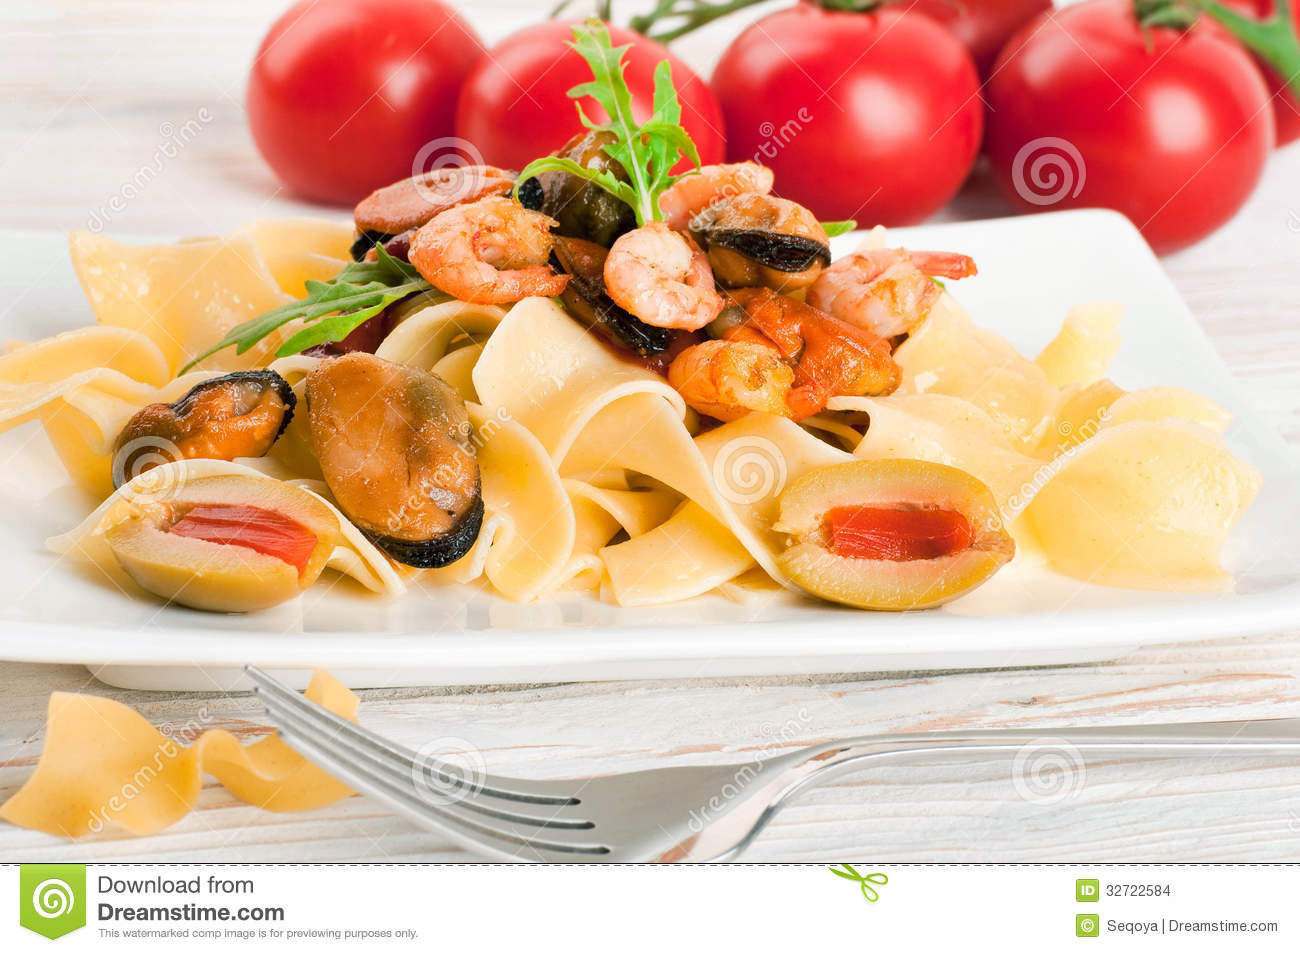 Pasta with tomato and seafood, mussels and shrimp.